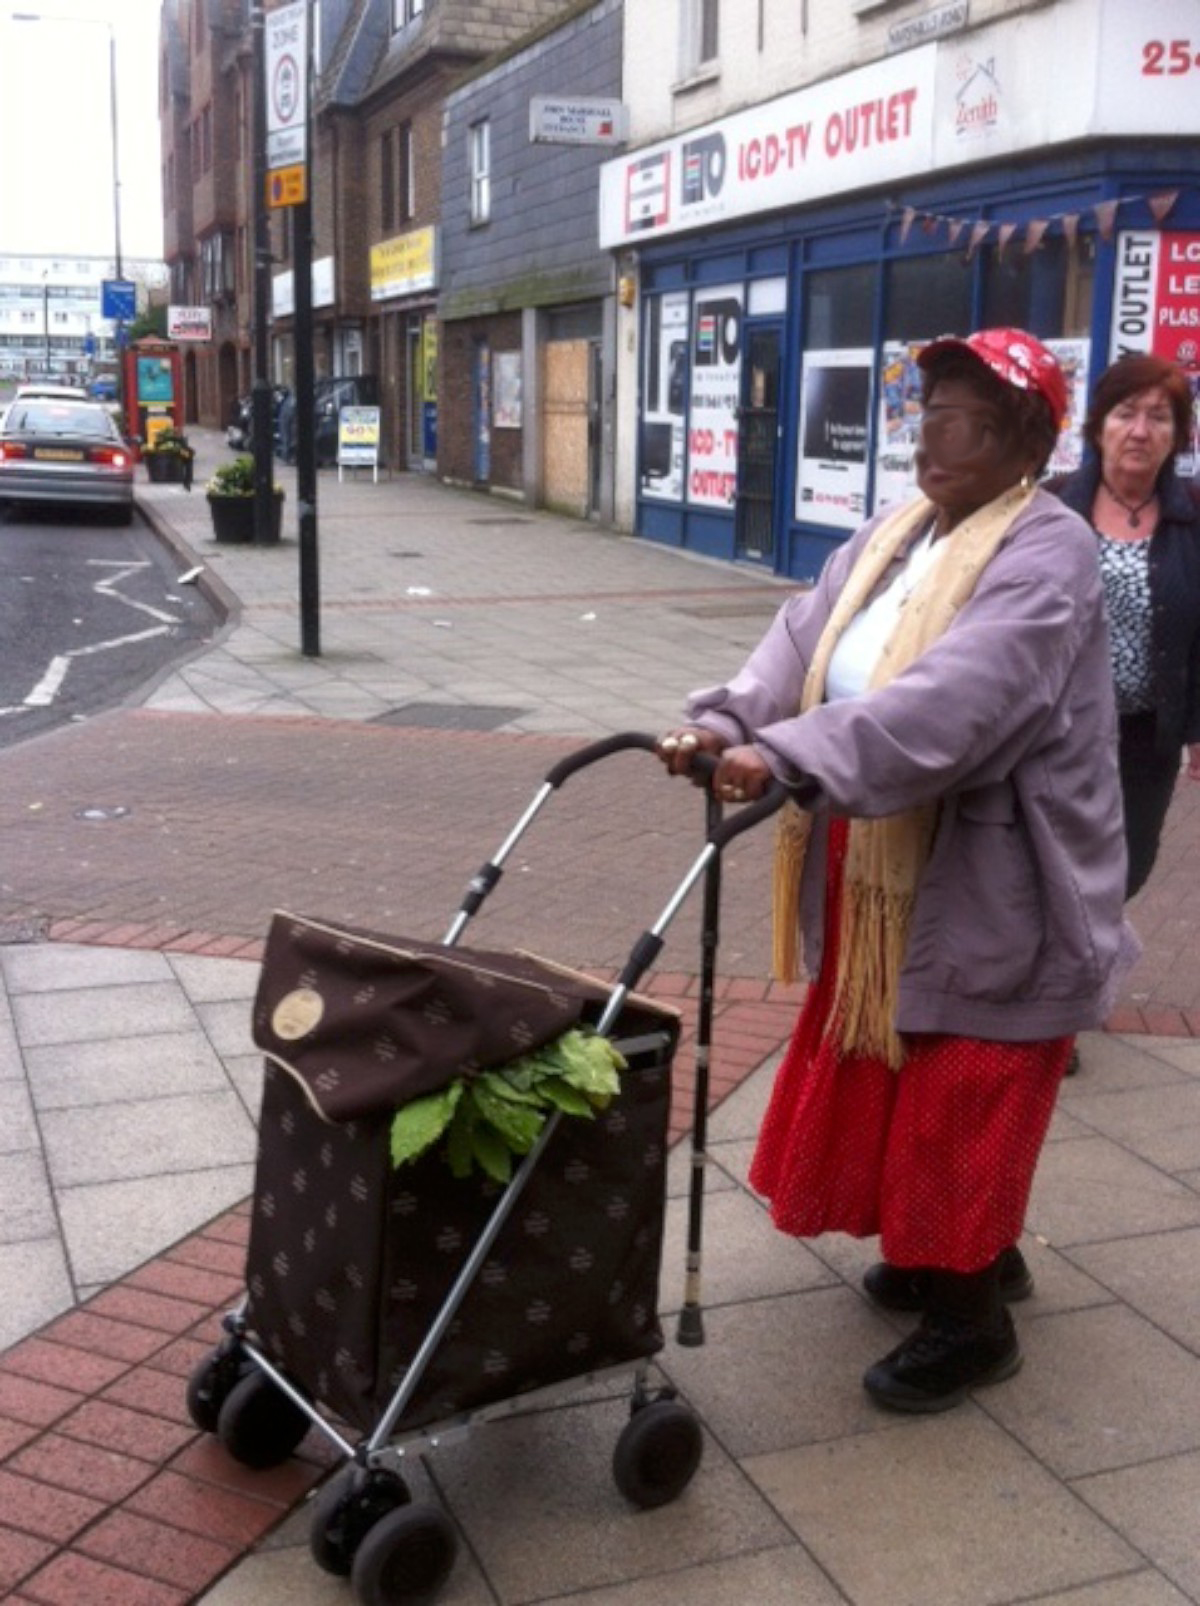 The alleged thief with what appears to be plants protruding from her trolley